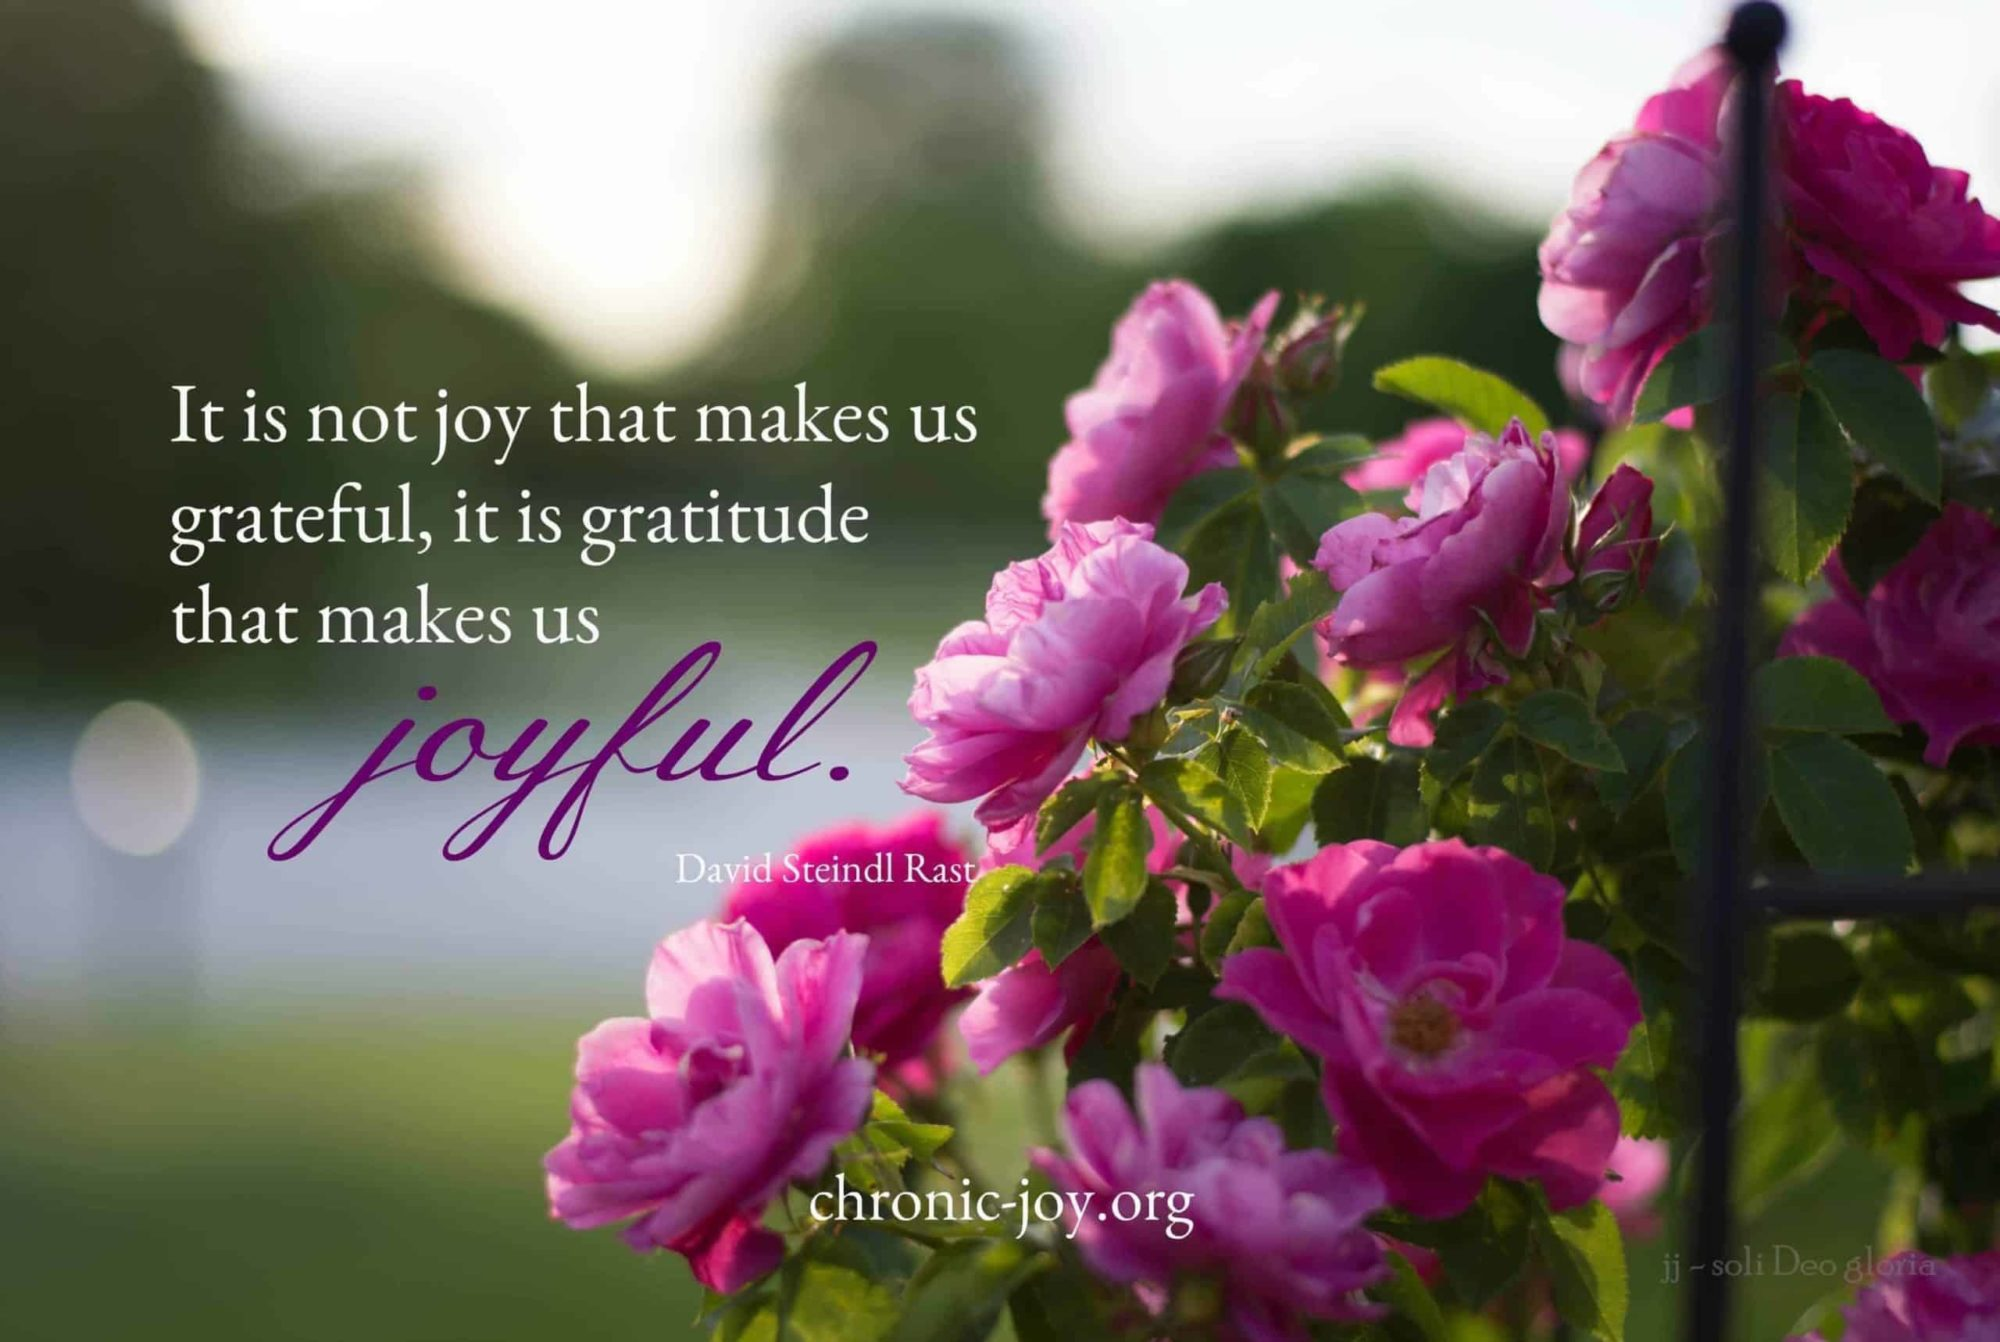 """It is not joy that makes us grateful, it is gratitude that makes us joyful."" David Steindl Rast"